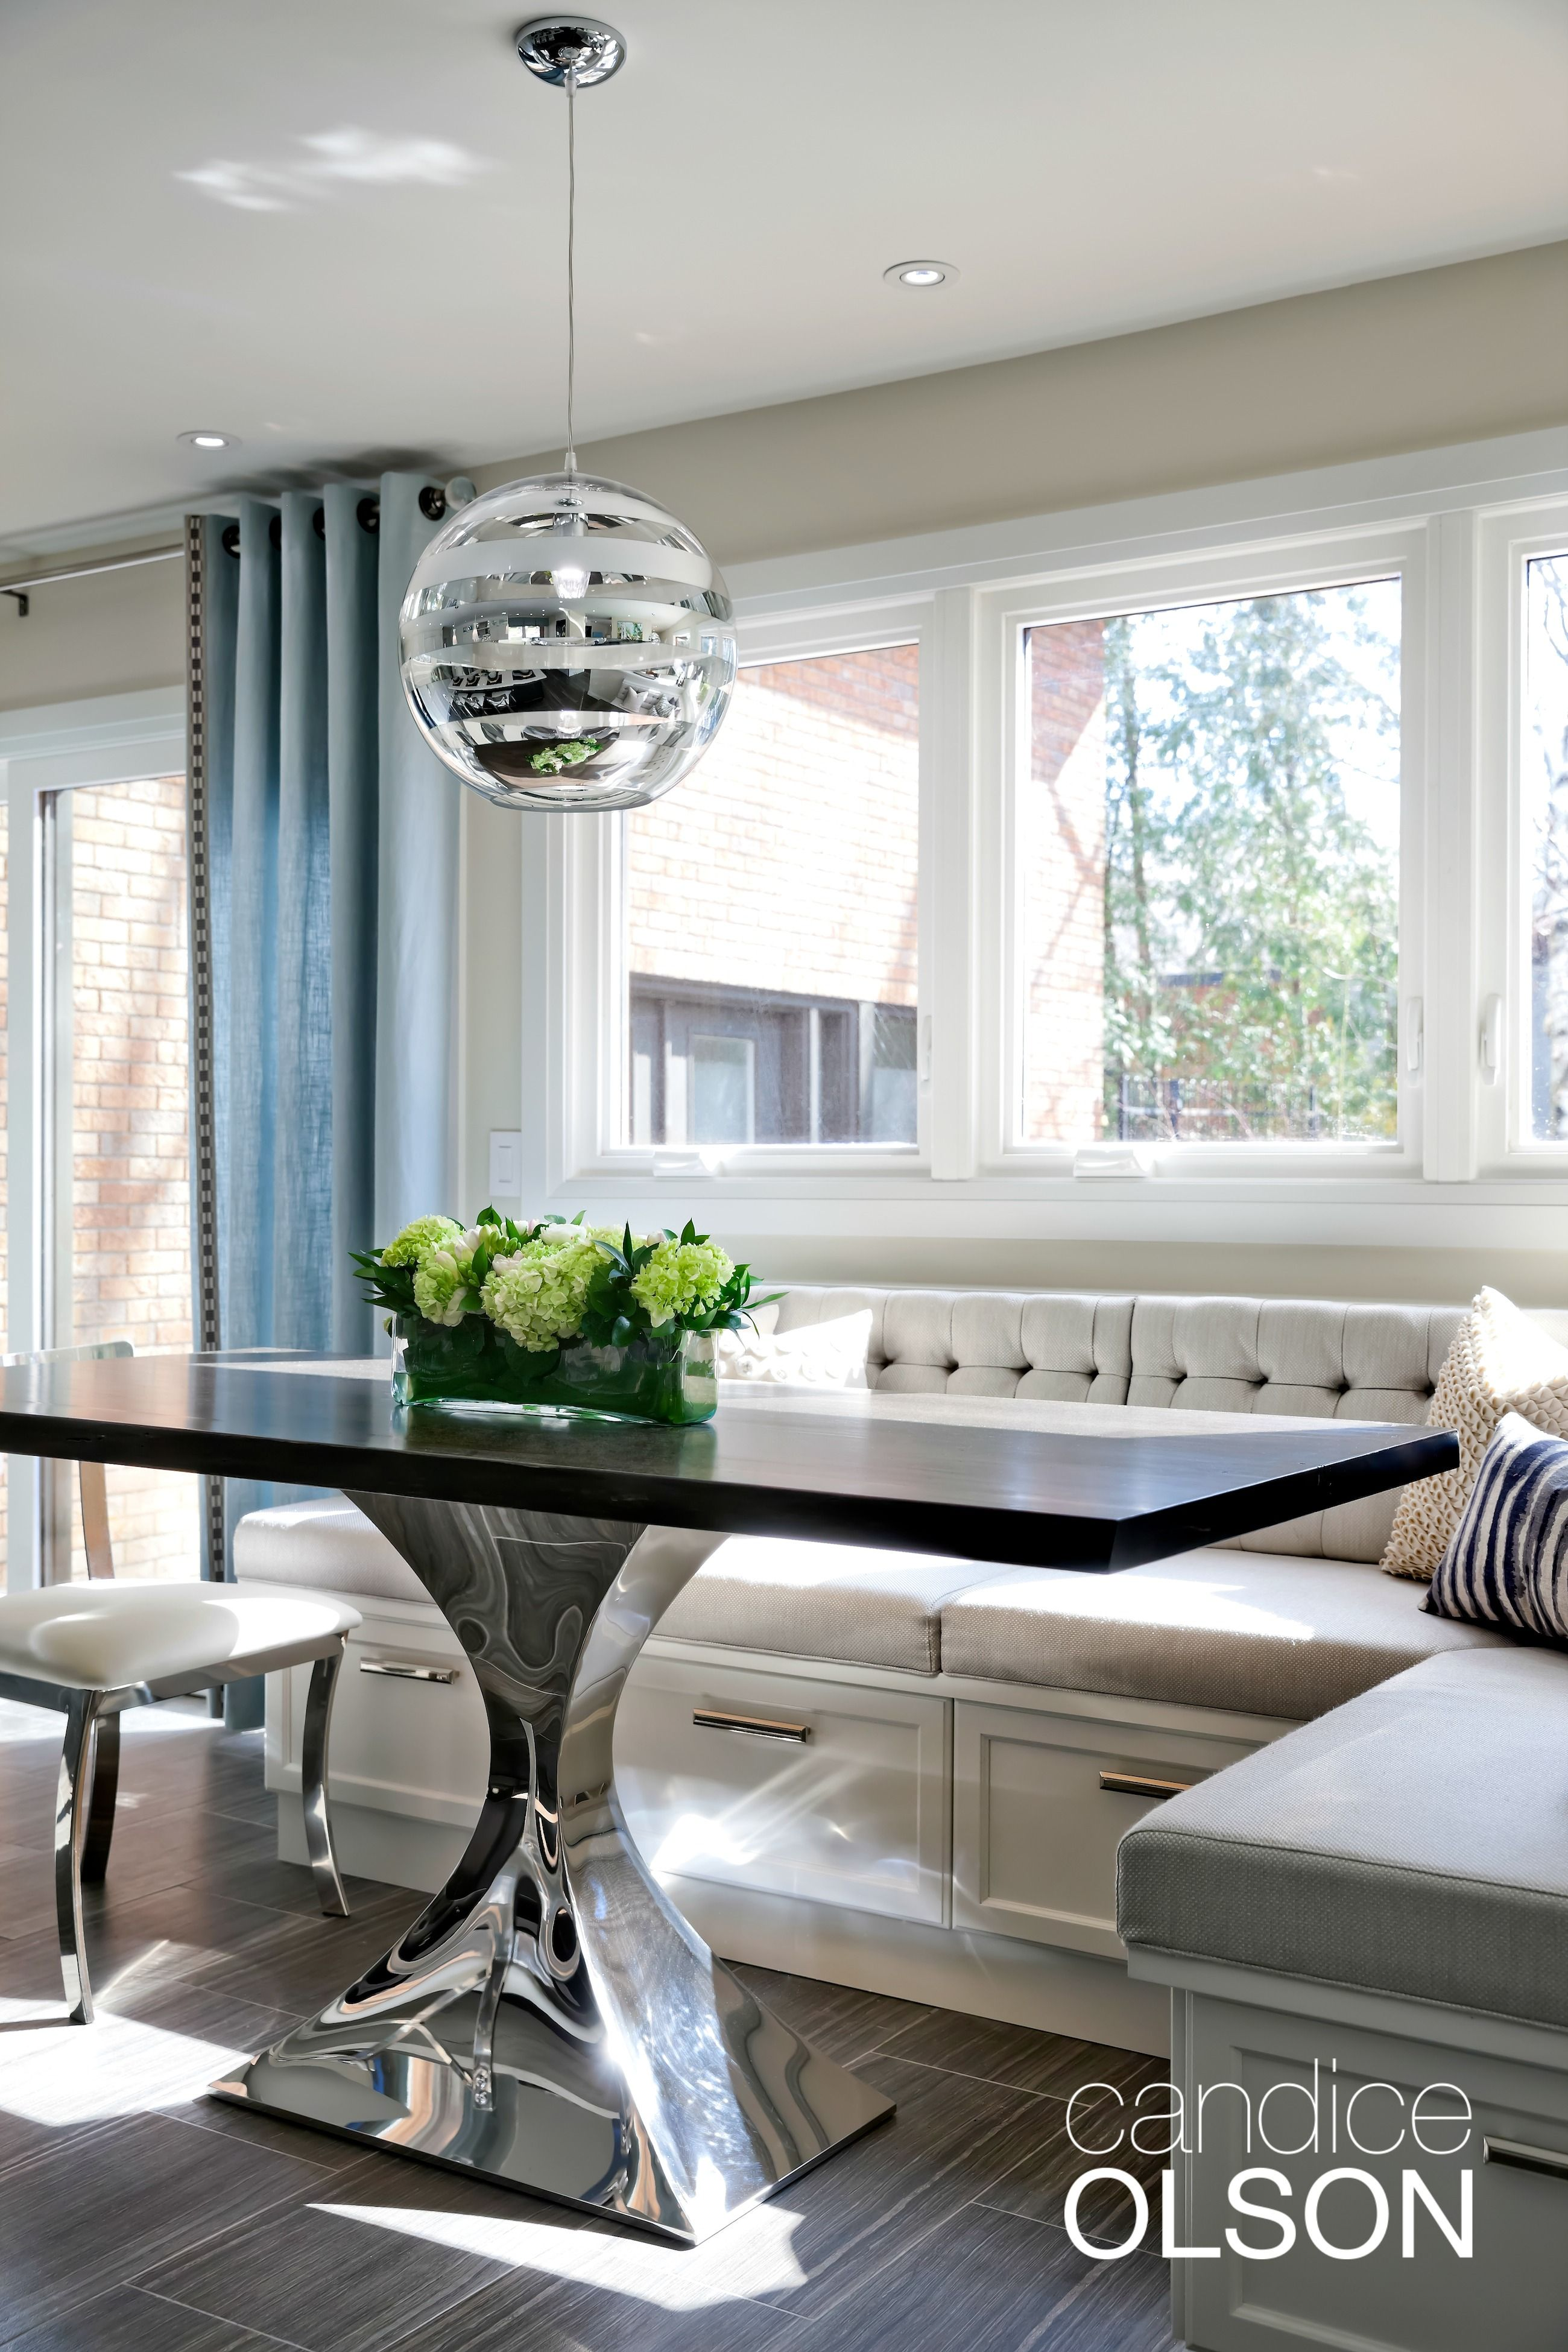 Petite Banquette Design The Challenge Create Seating For Groups Within A Small